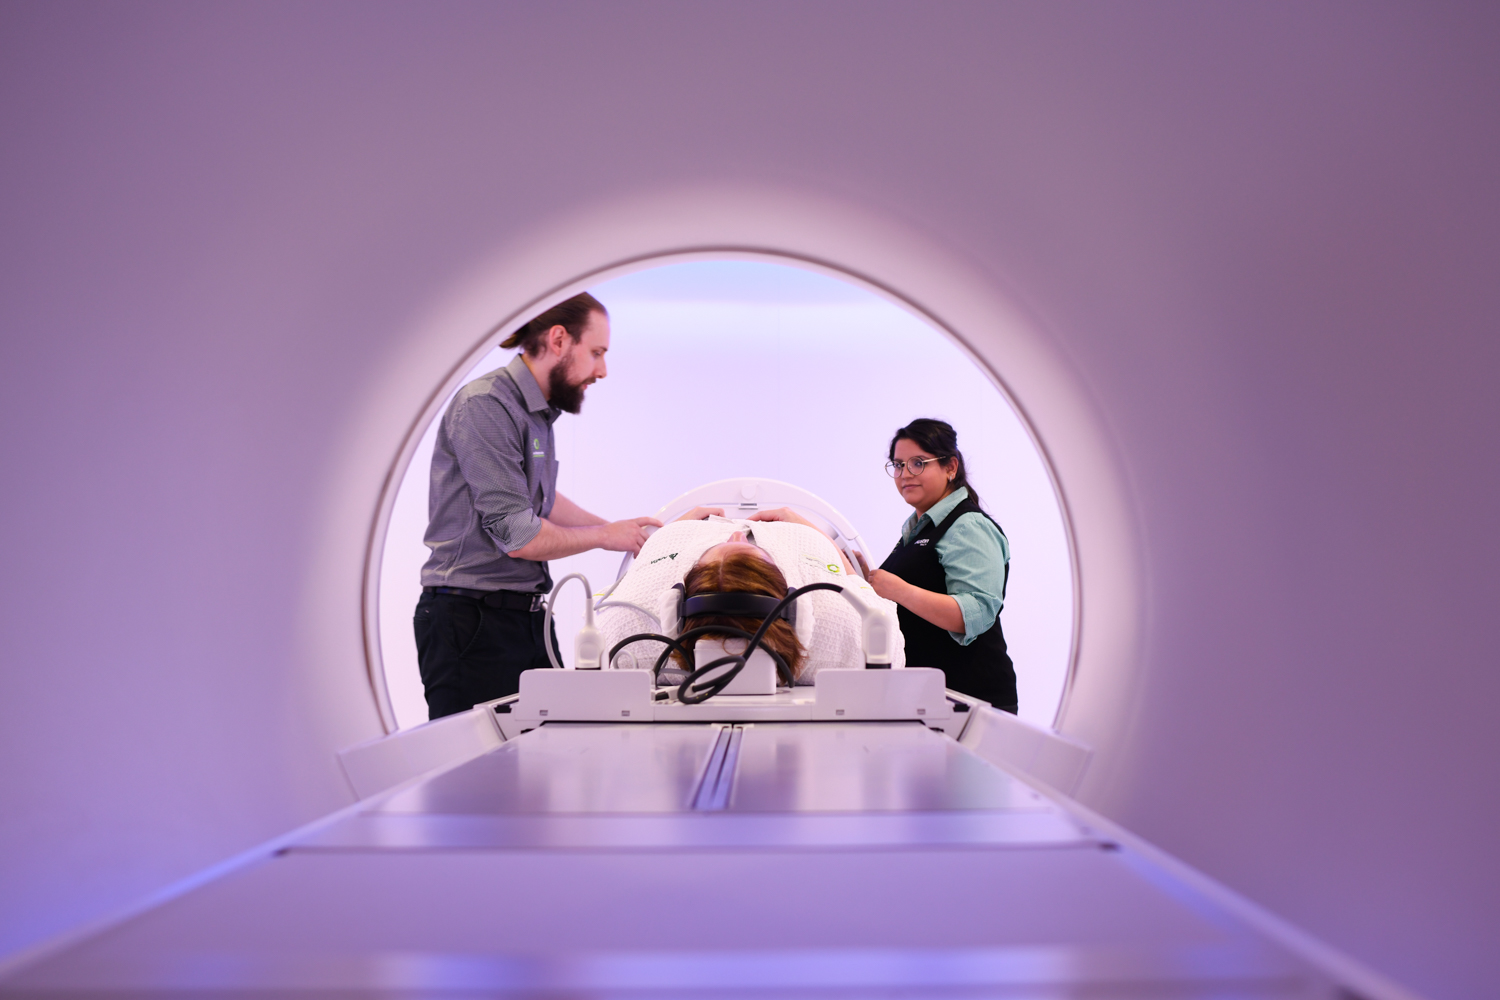 A patient being treated in the MRI-guided linear accelerator